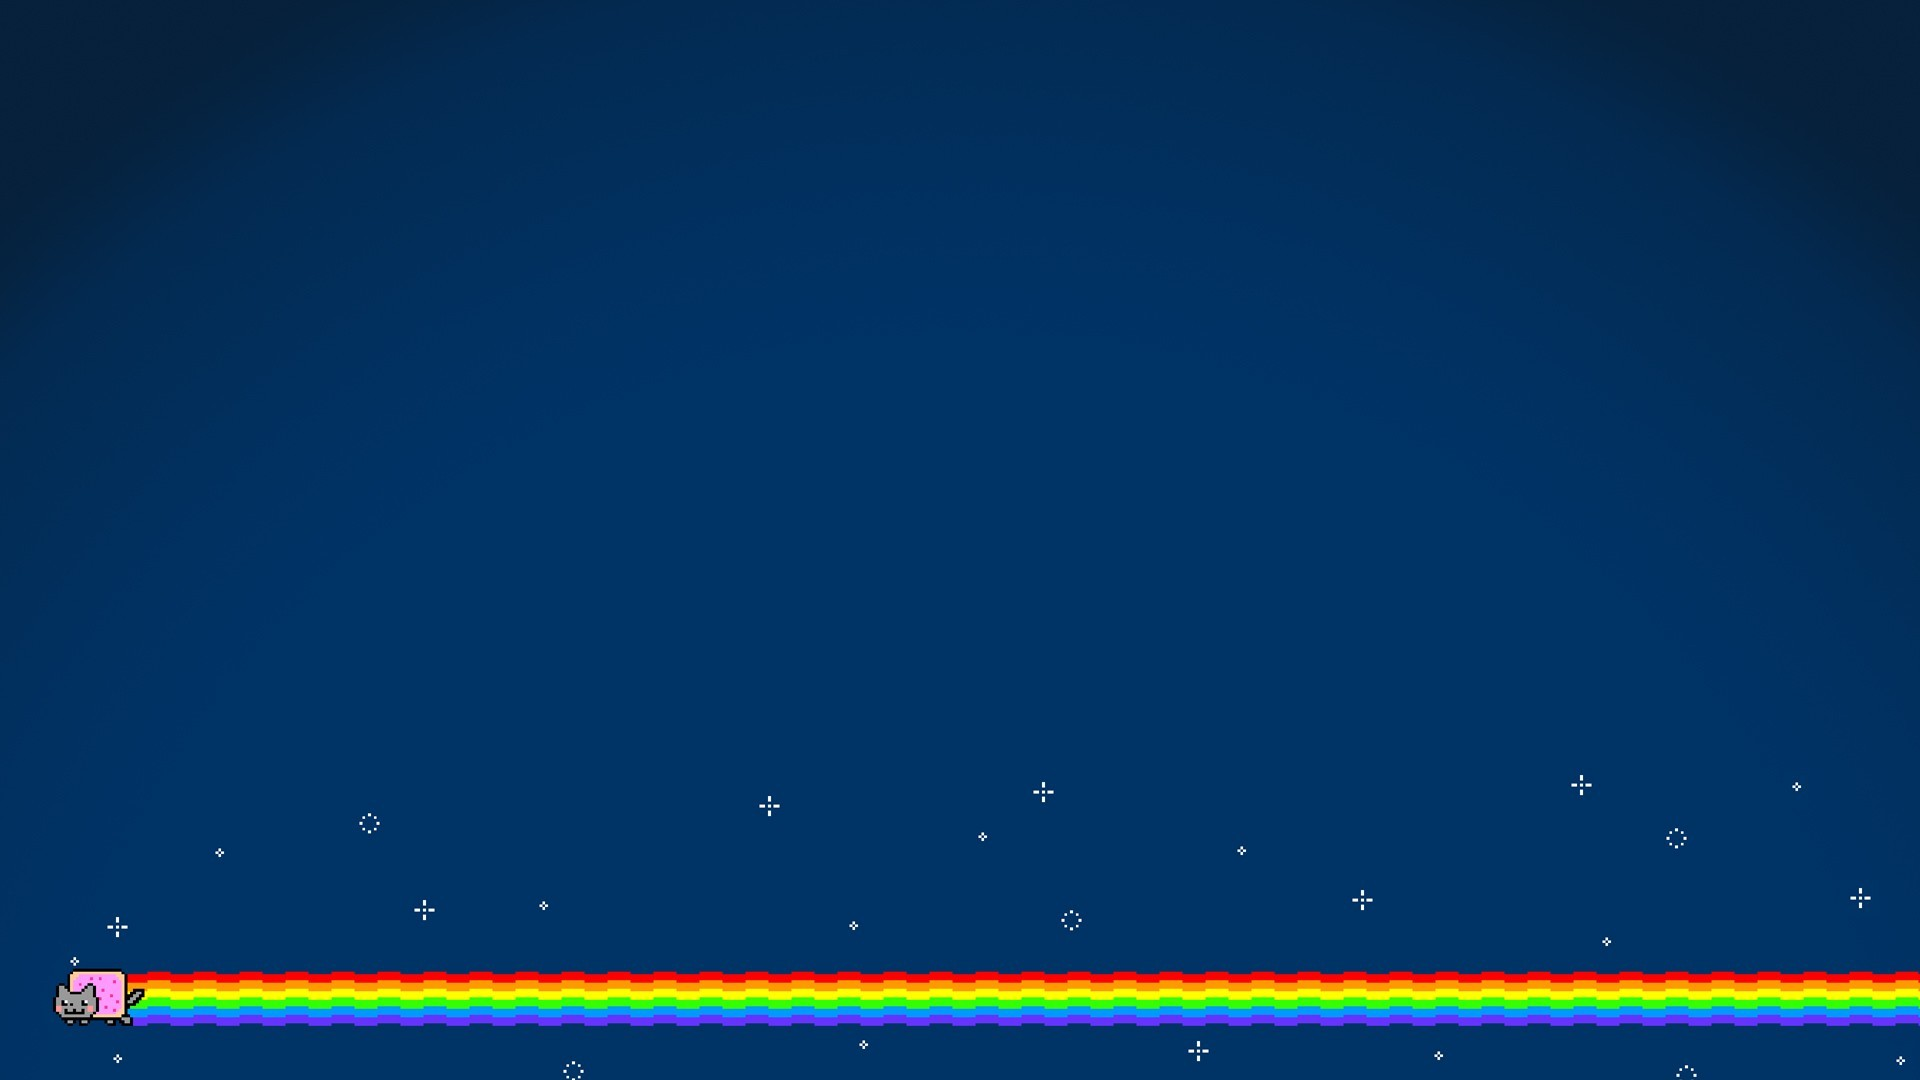 Krishna 3d Wallpaper For Mobile Nyan Cat Simple Background Blue Rainbows Cat Wallpapers Hd